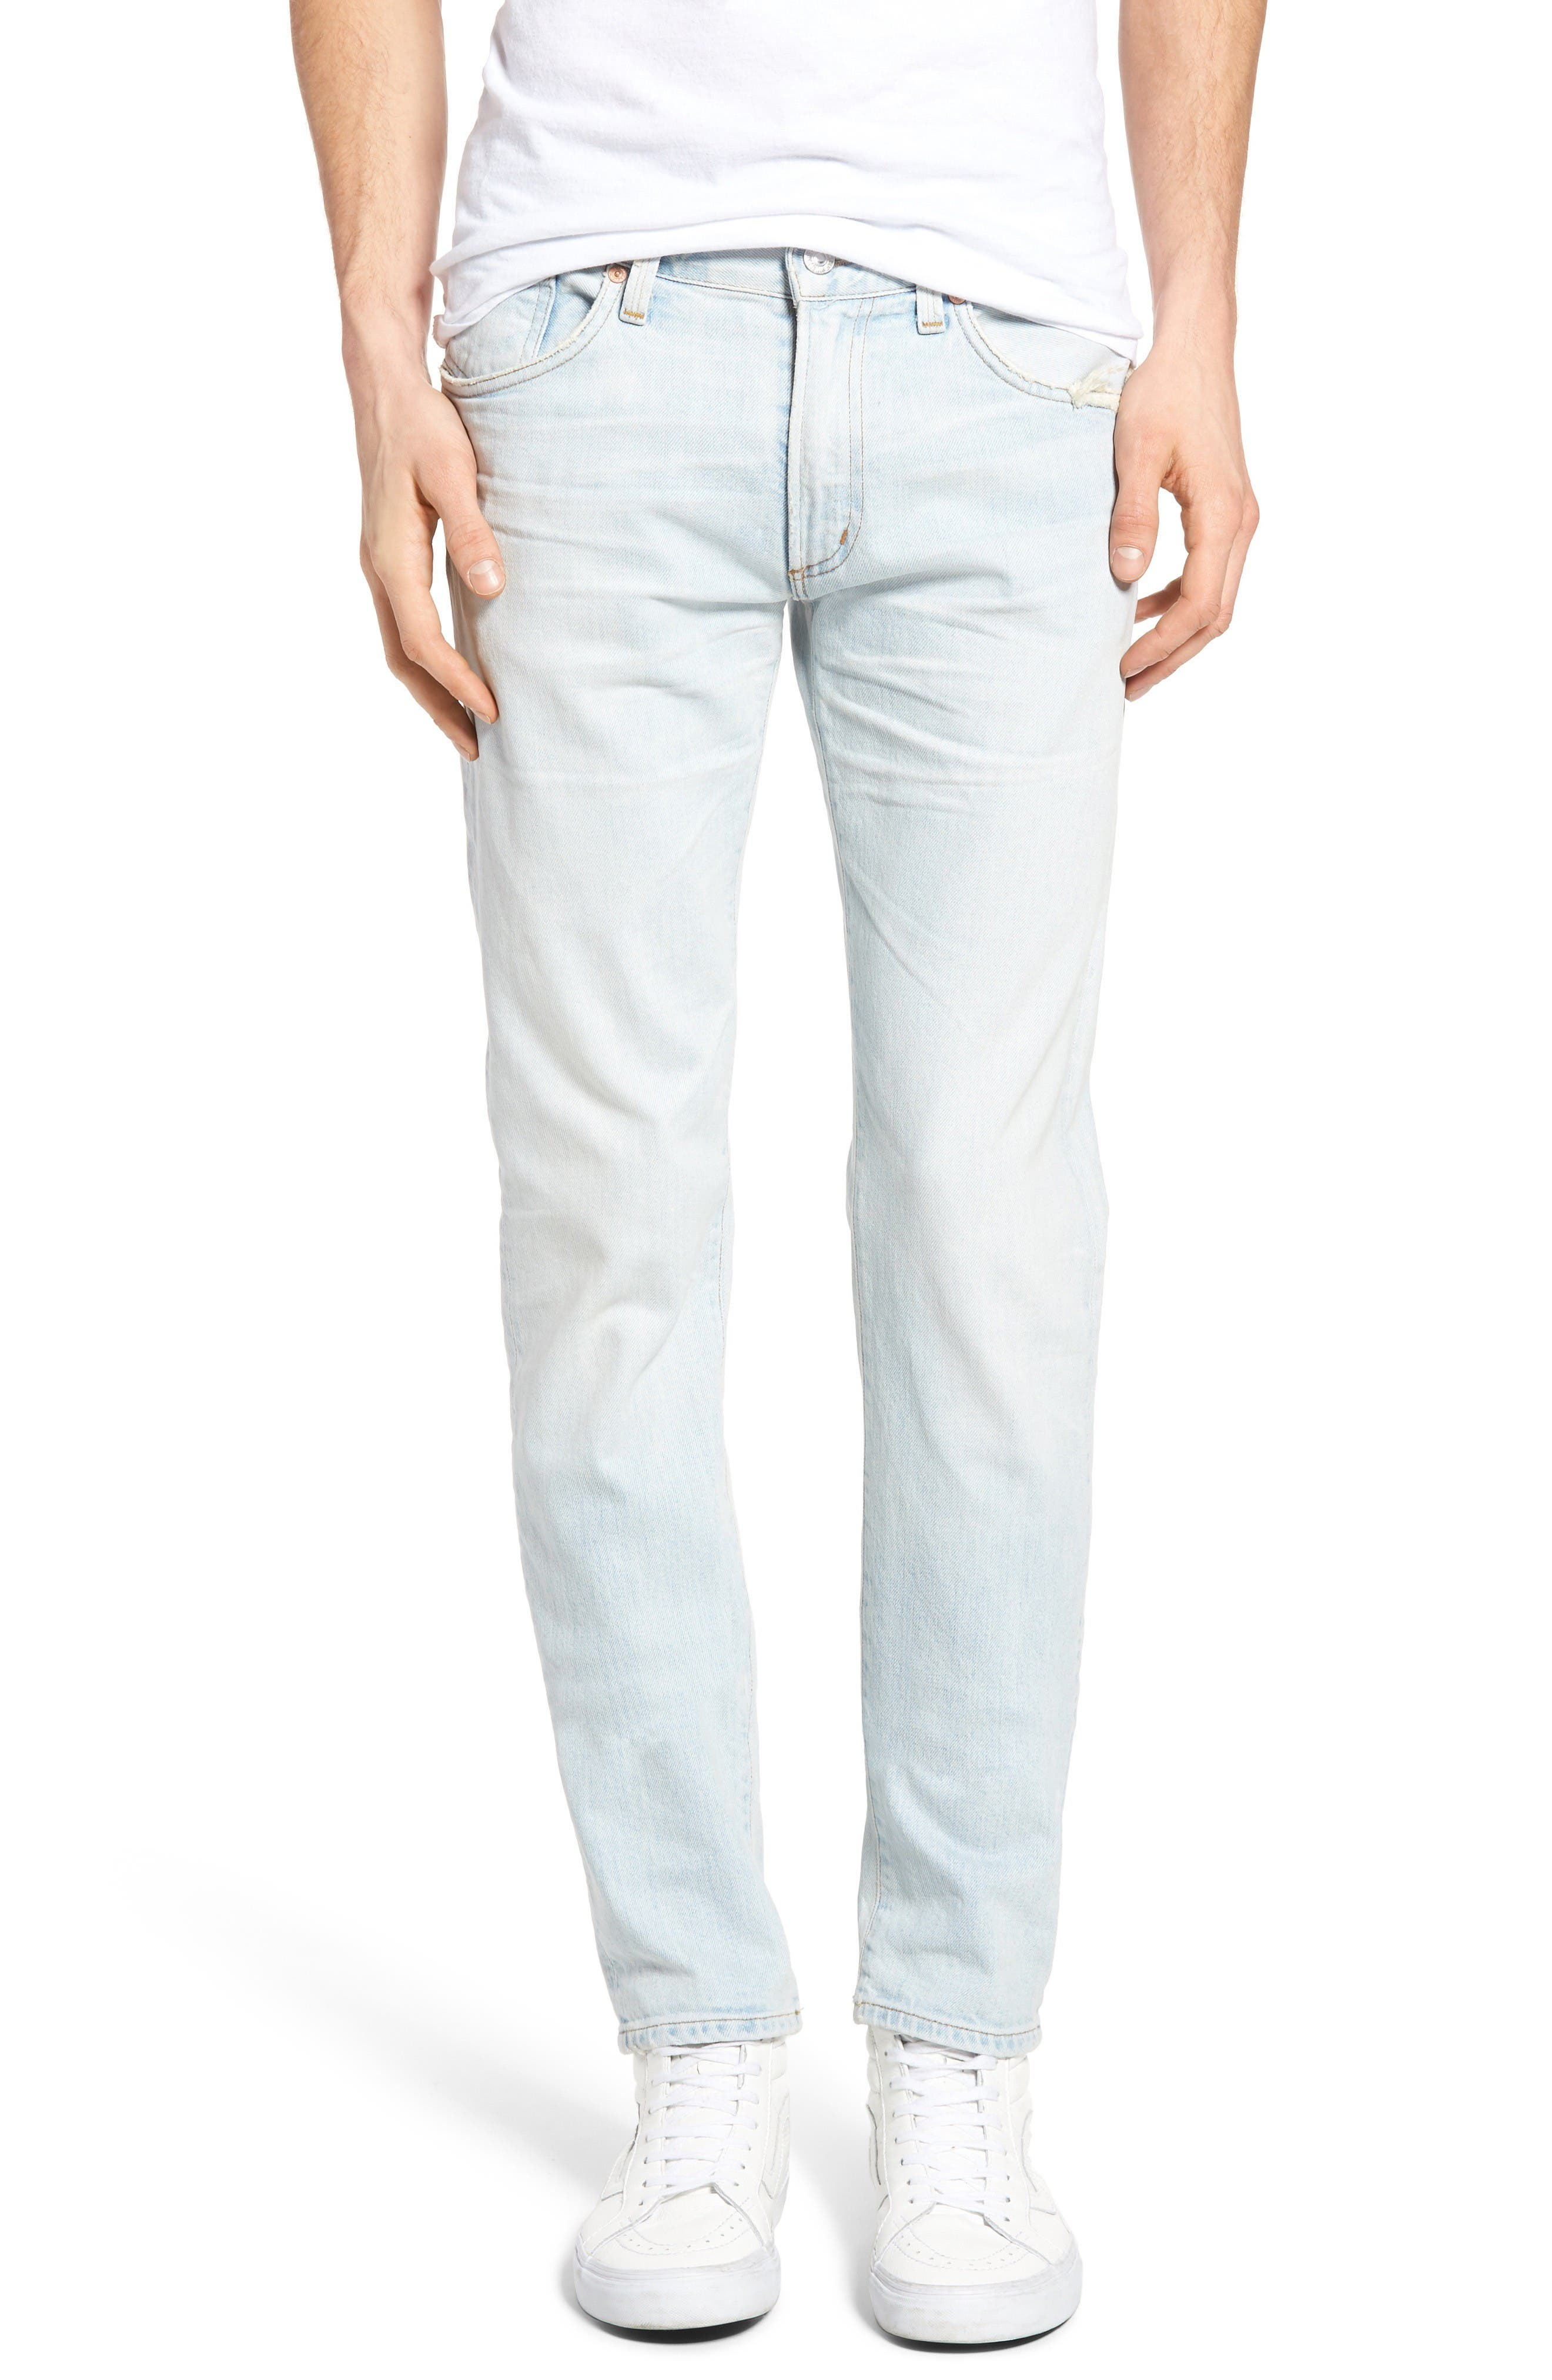 Main Image - Citizens of Humanity Noah Skinny Fit Jeans (Mirage)